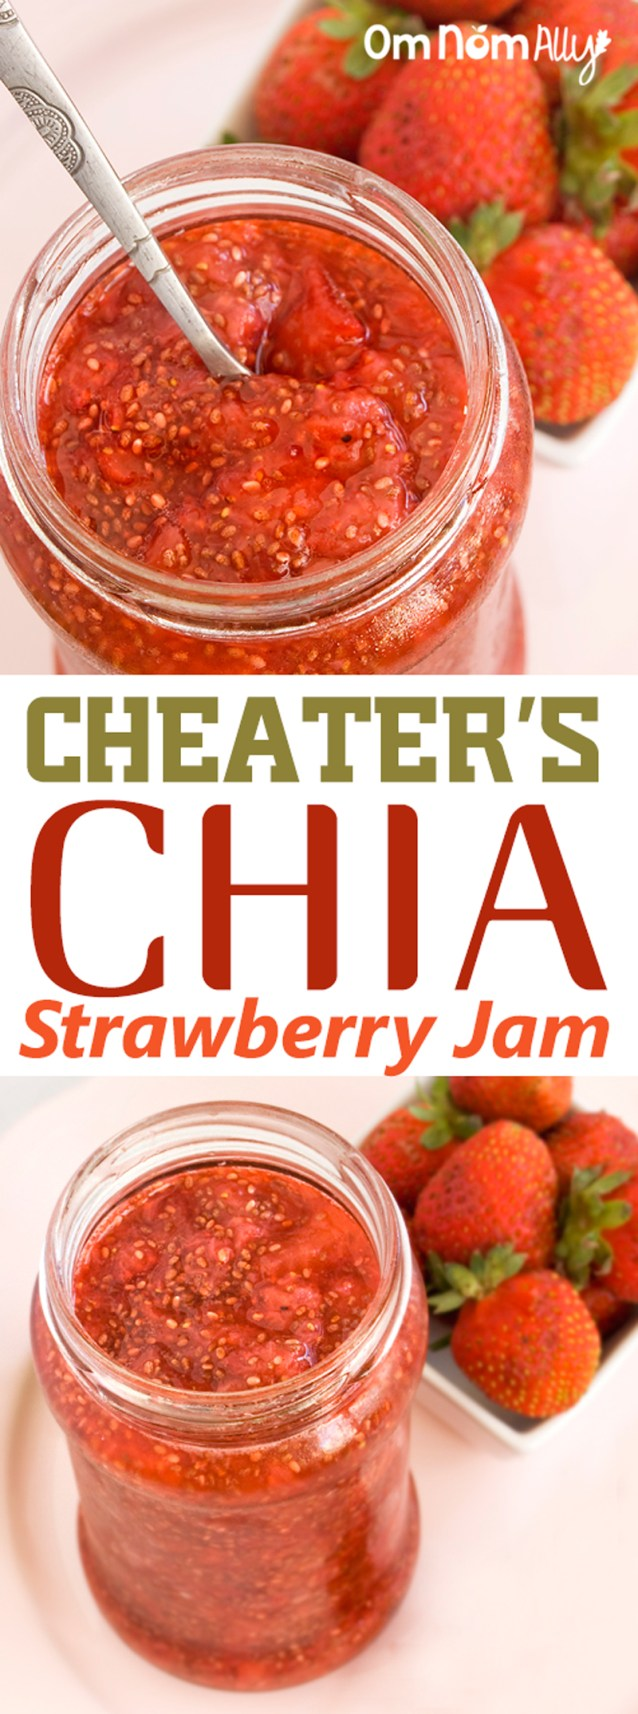 Cheater's Chia Strawberry Jam @OmNomAlly